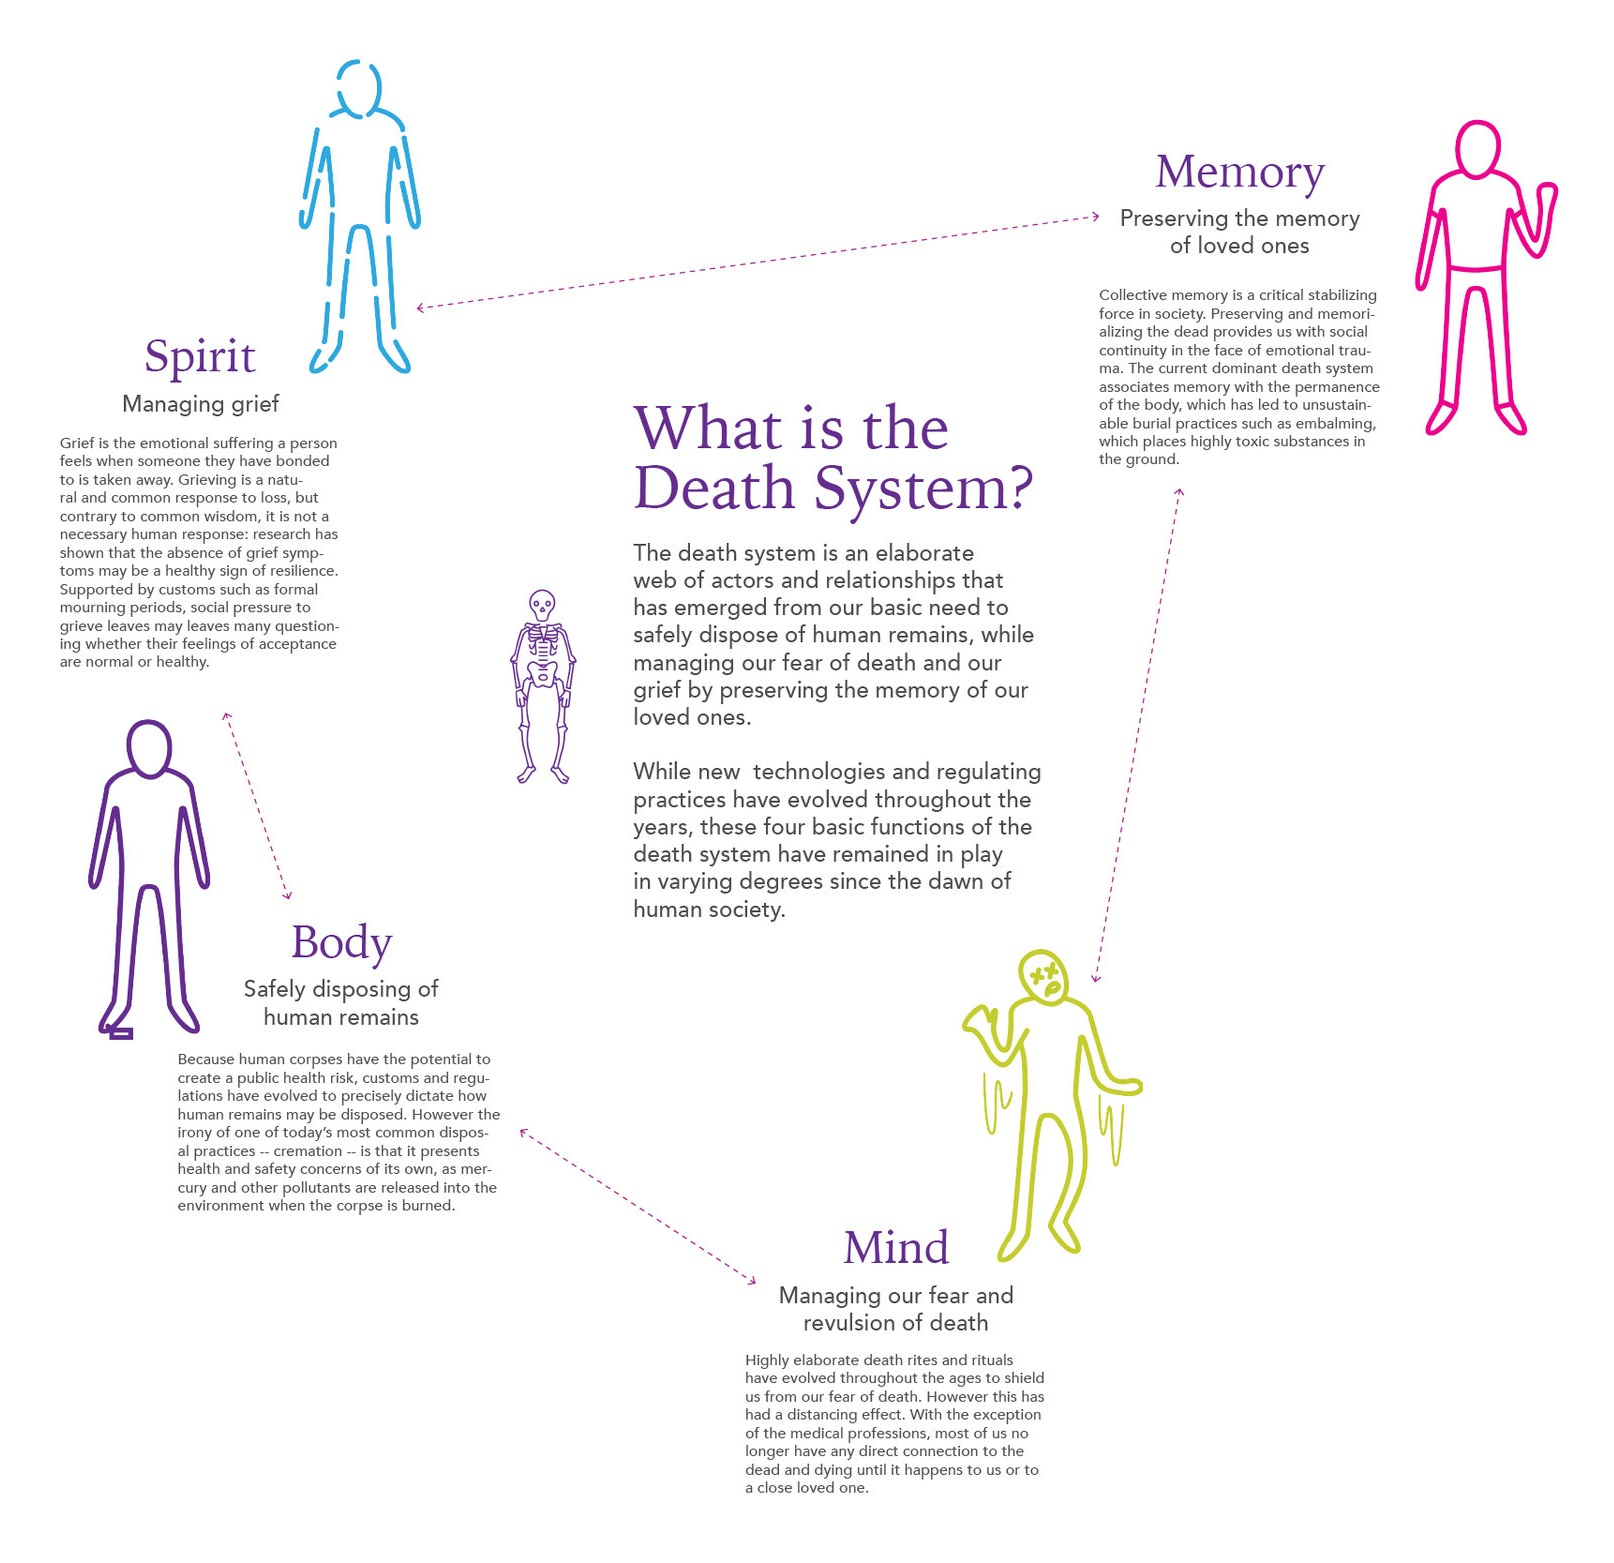 Excerpt from the gigamap showing the functions of the death system.